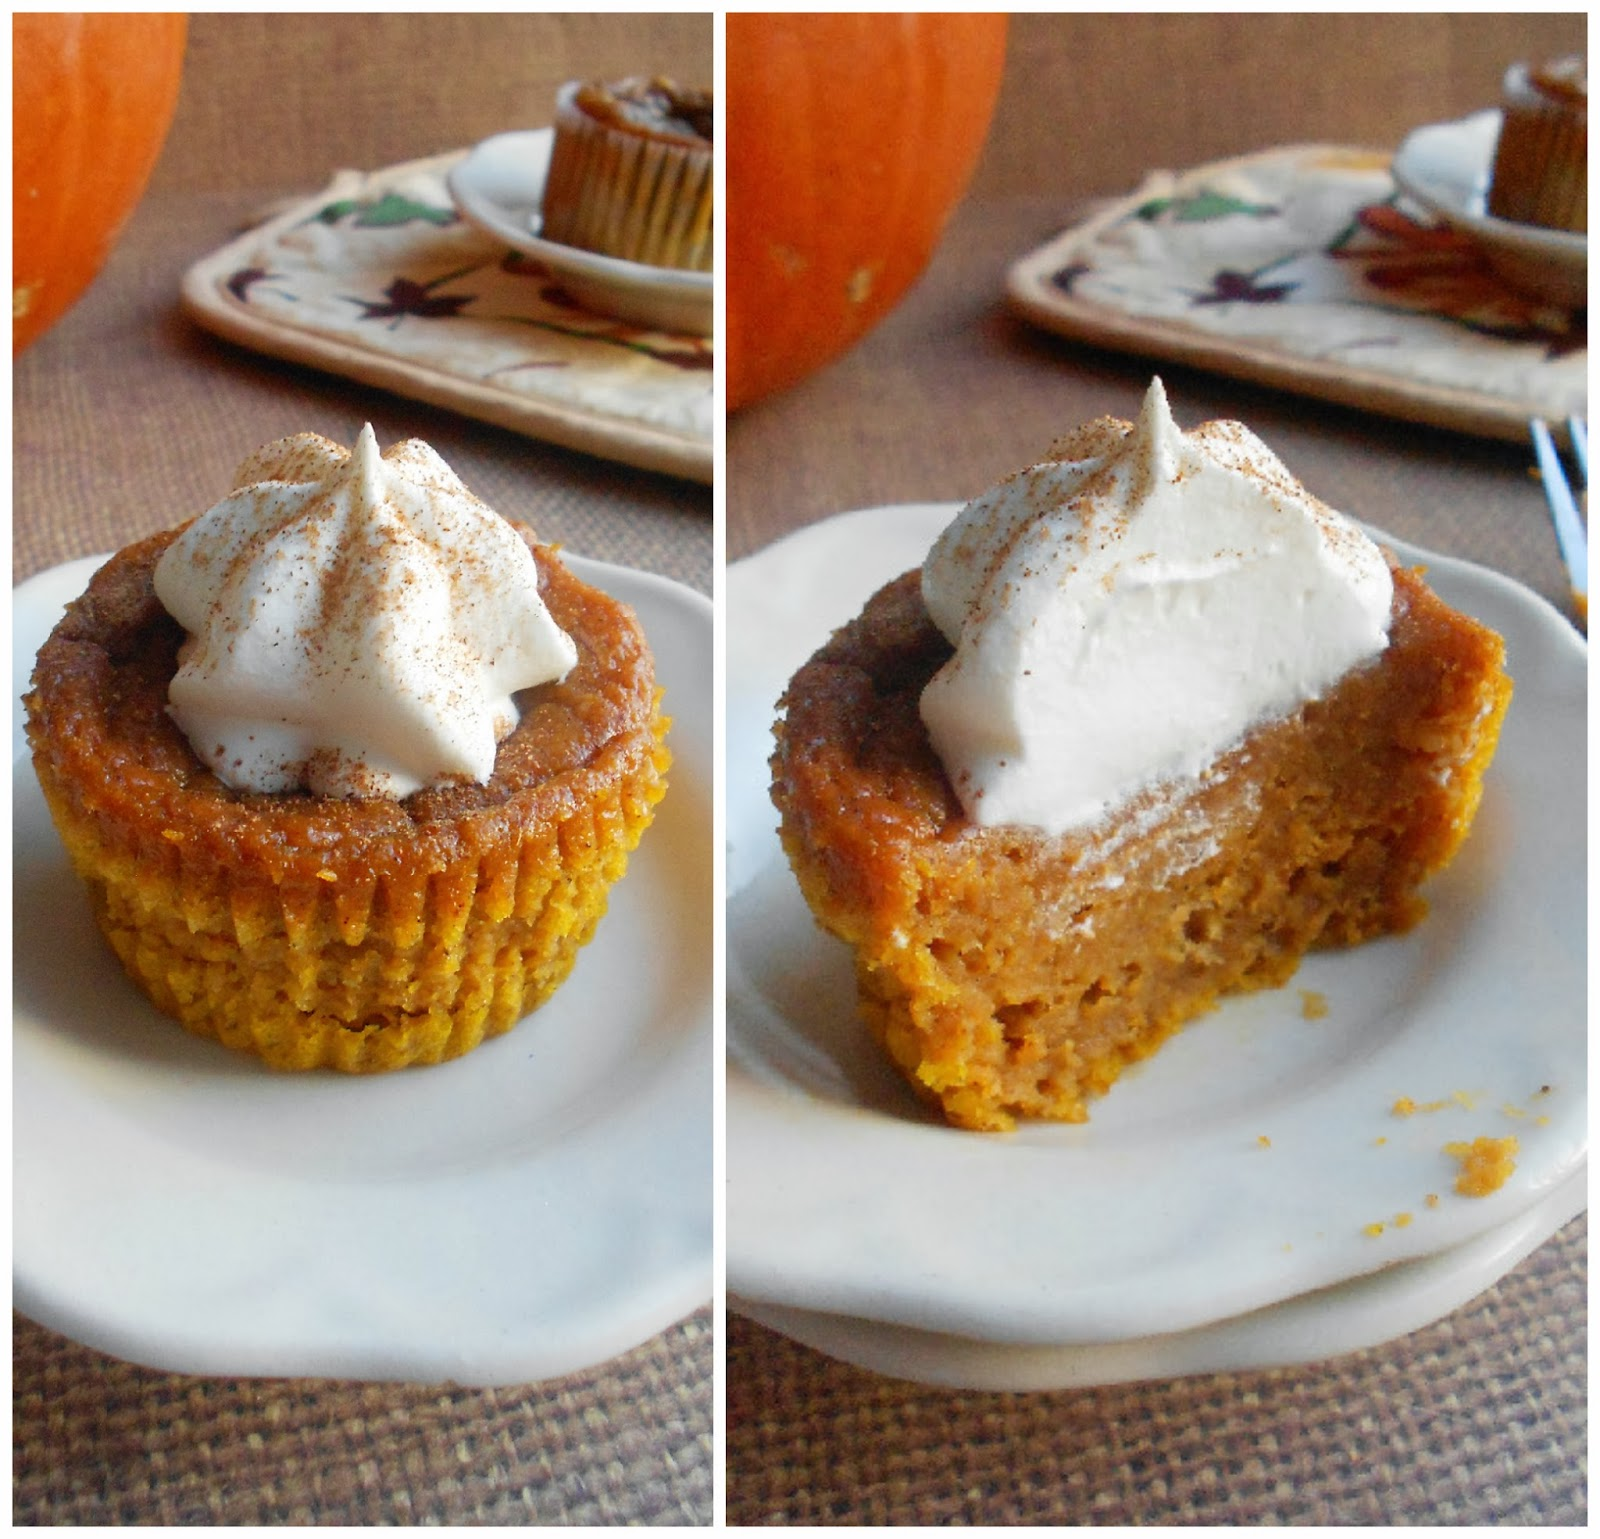 Confessions of a Confectionista: Pumpkin Pie Cupcakes